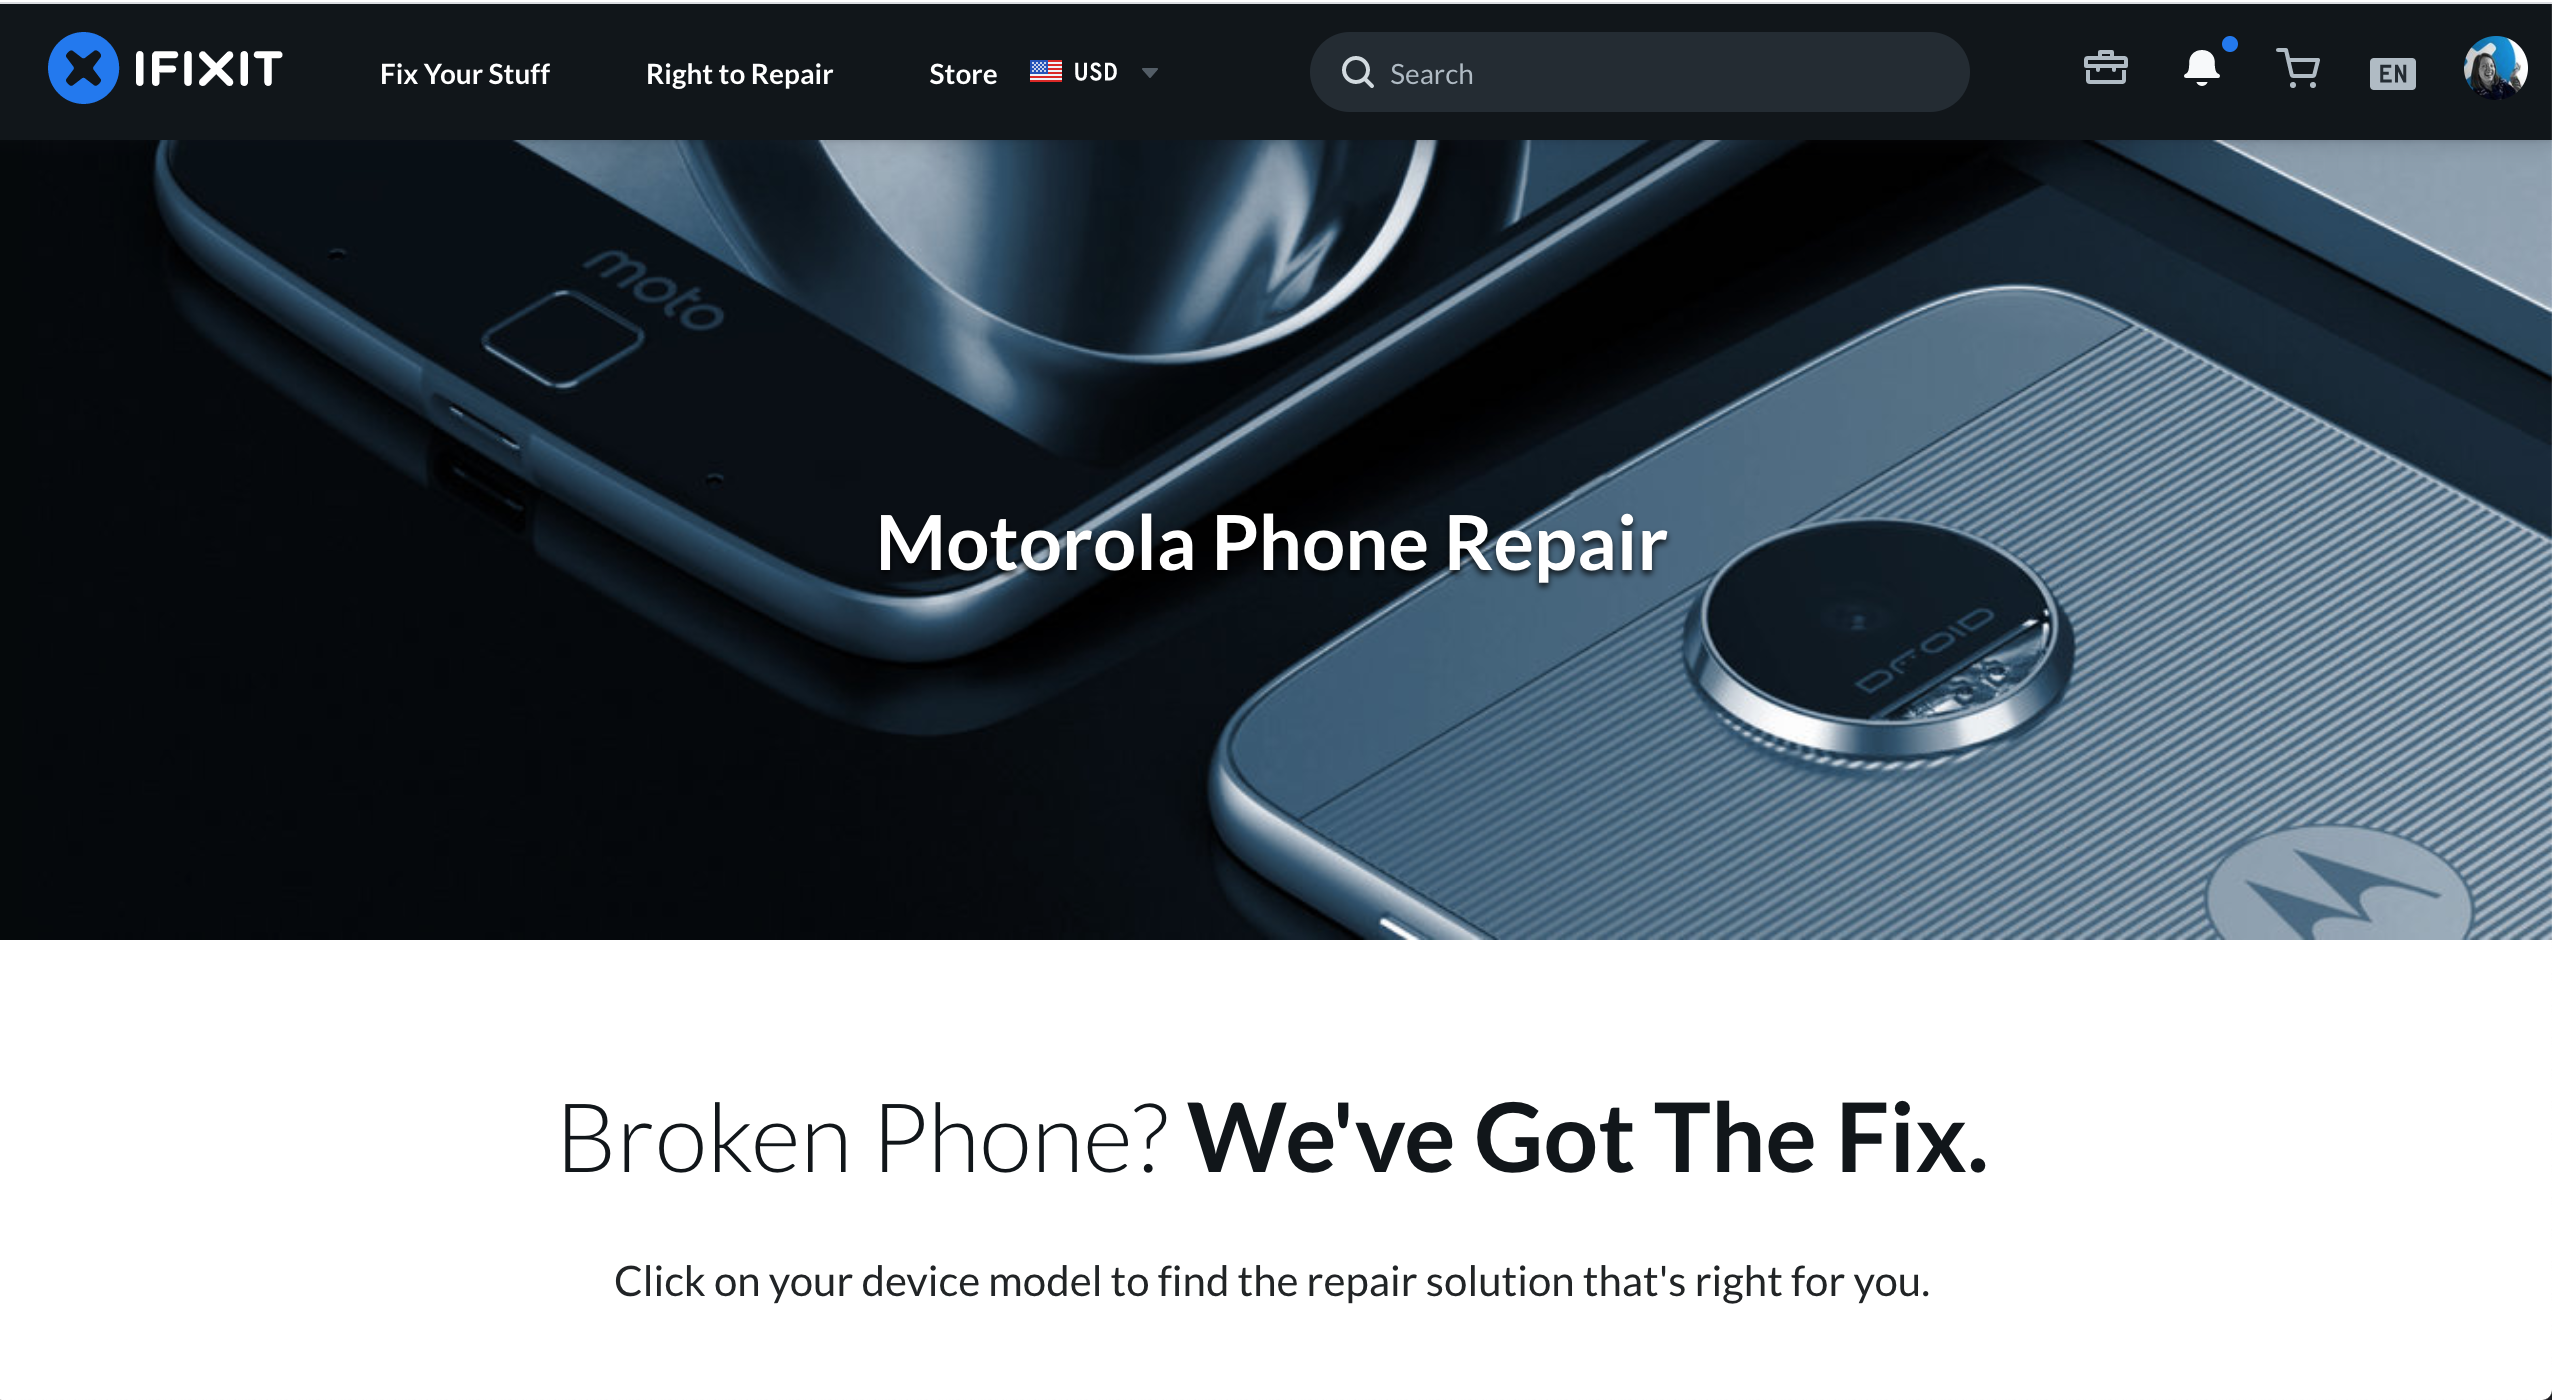 Screenshot of Motorola partnership page on ifixit.com